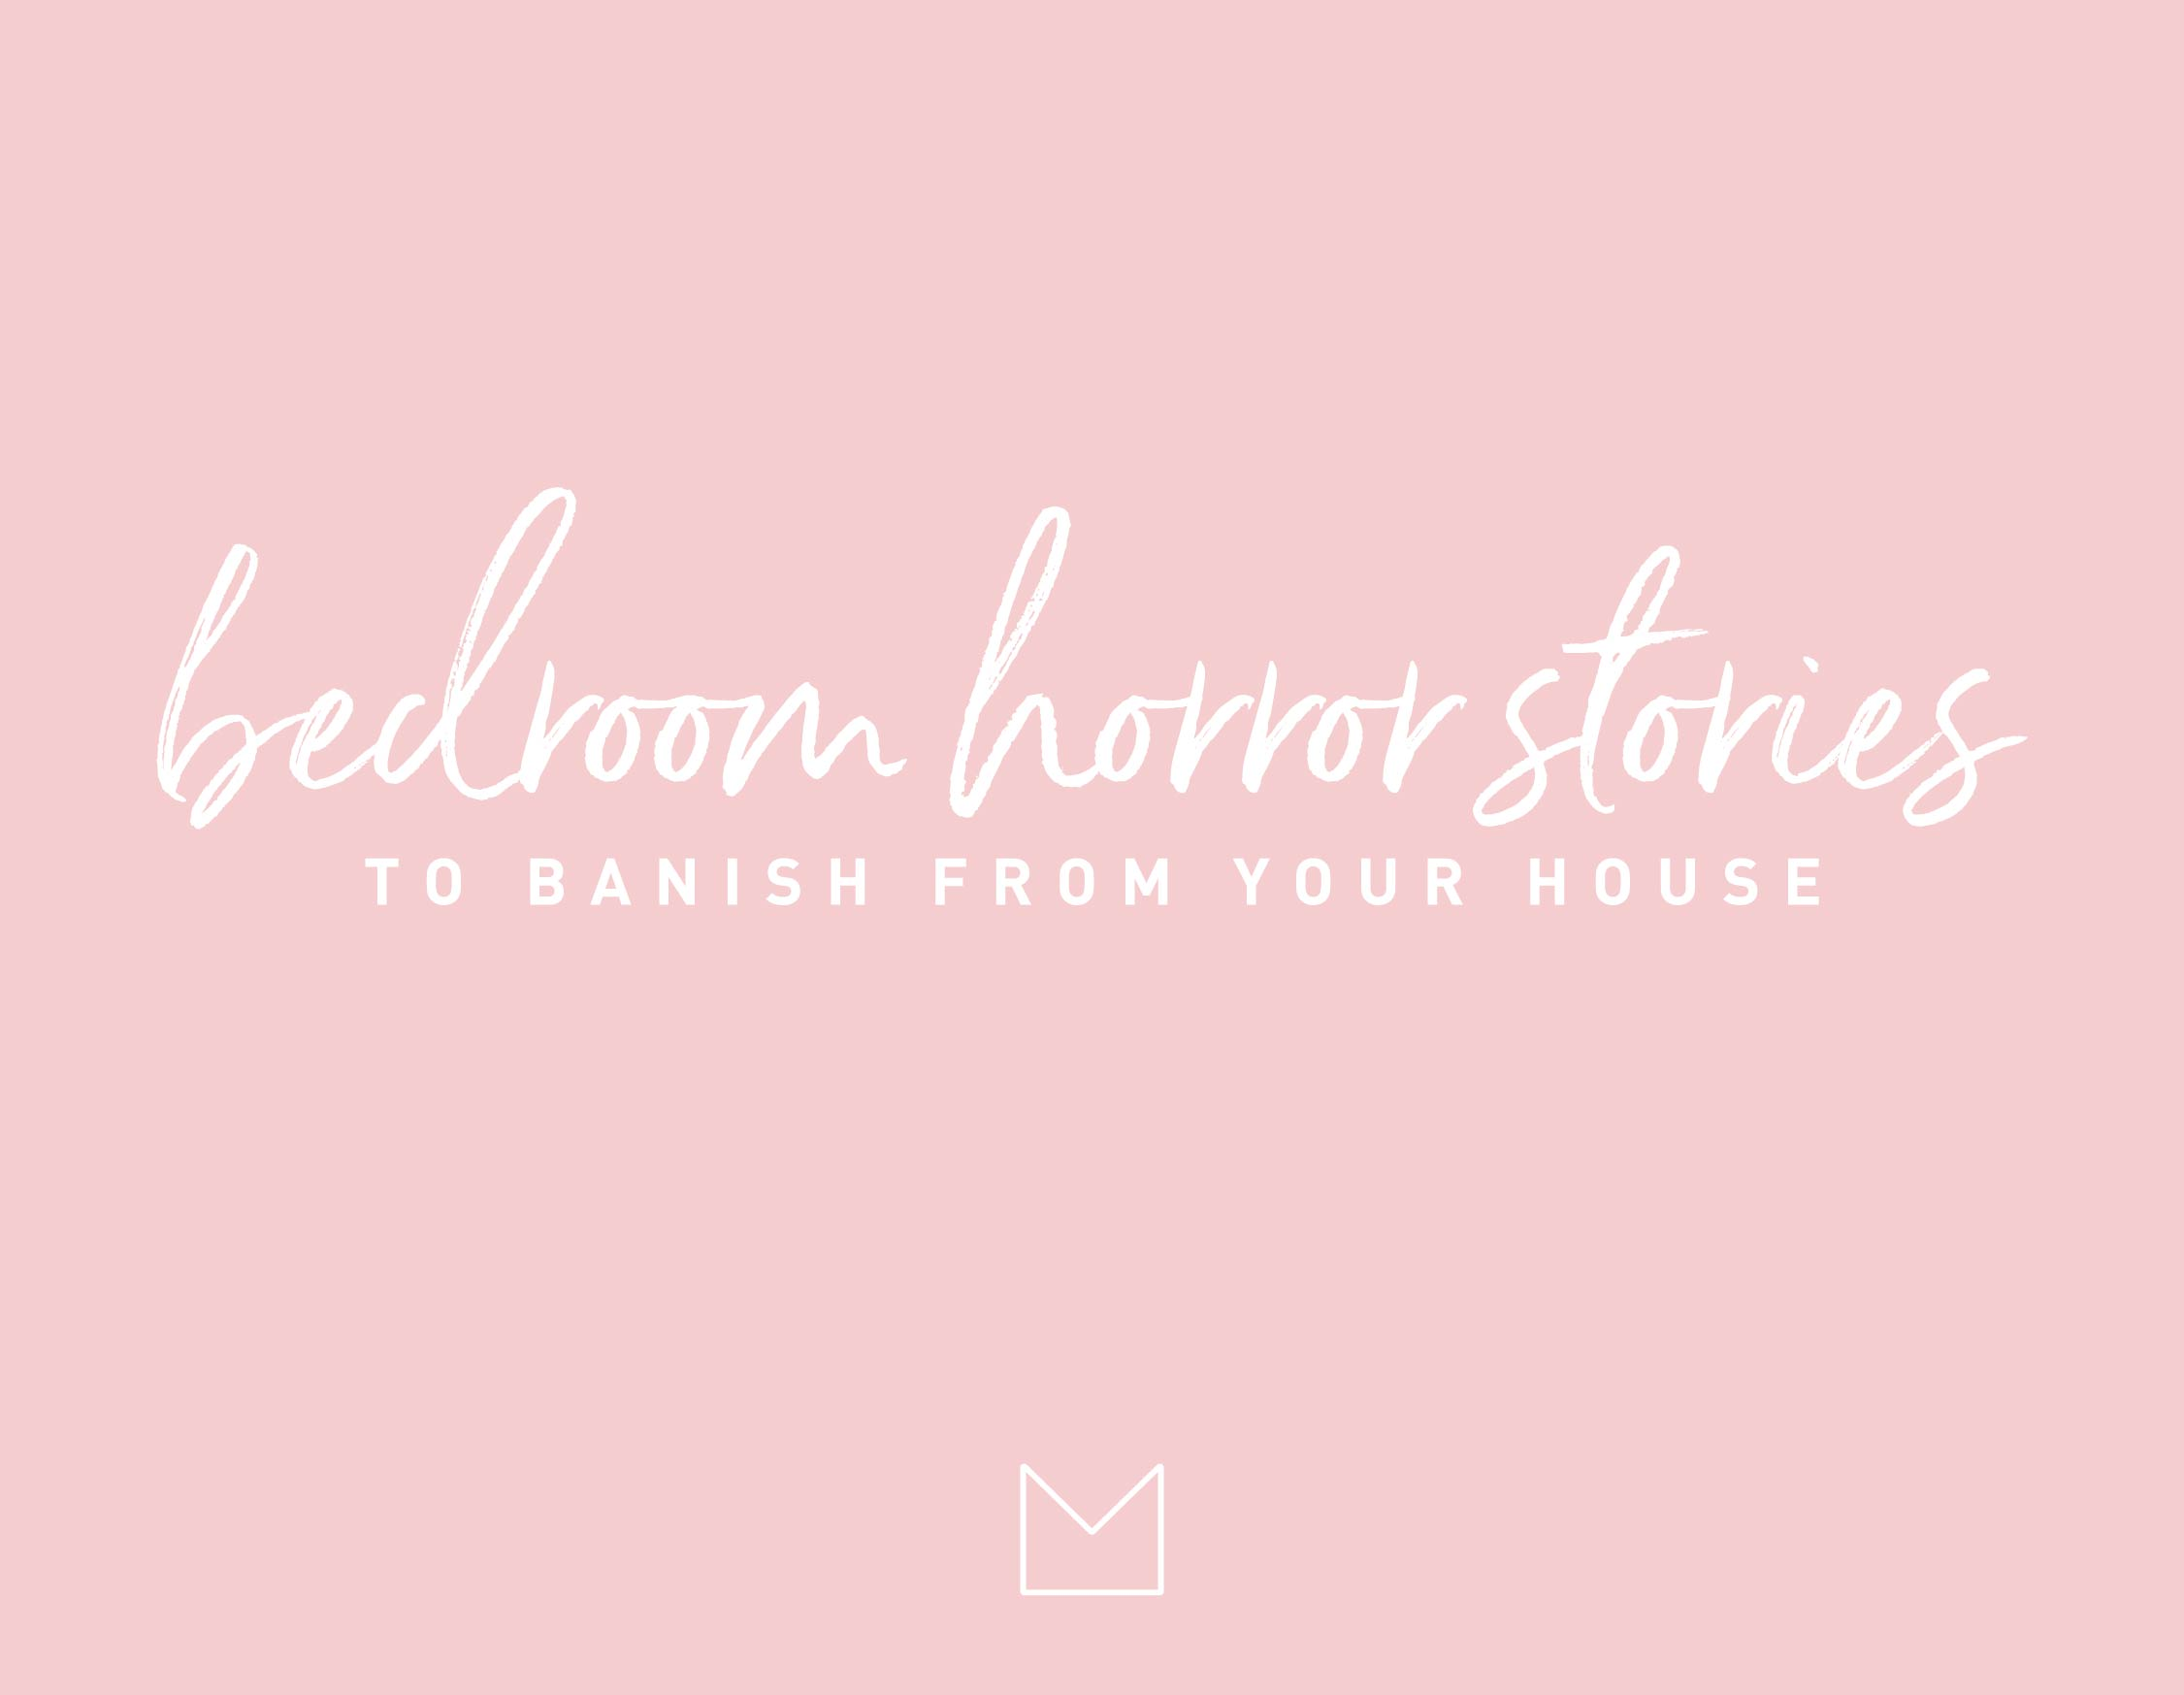 My Luxury Linen Three horror stories to banish from your bedroom